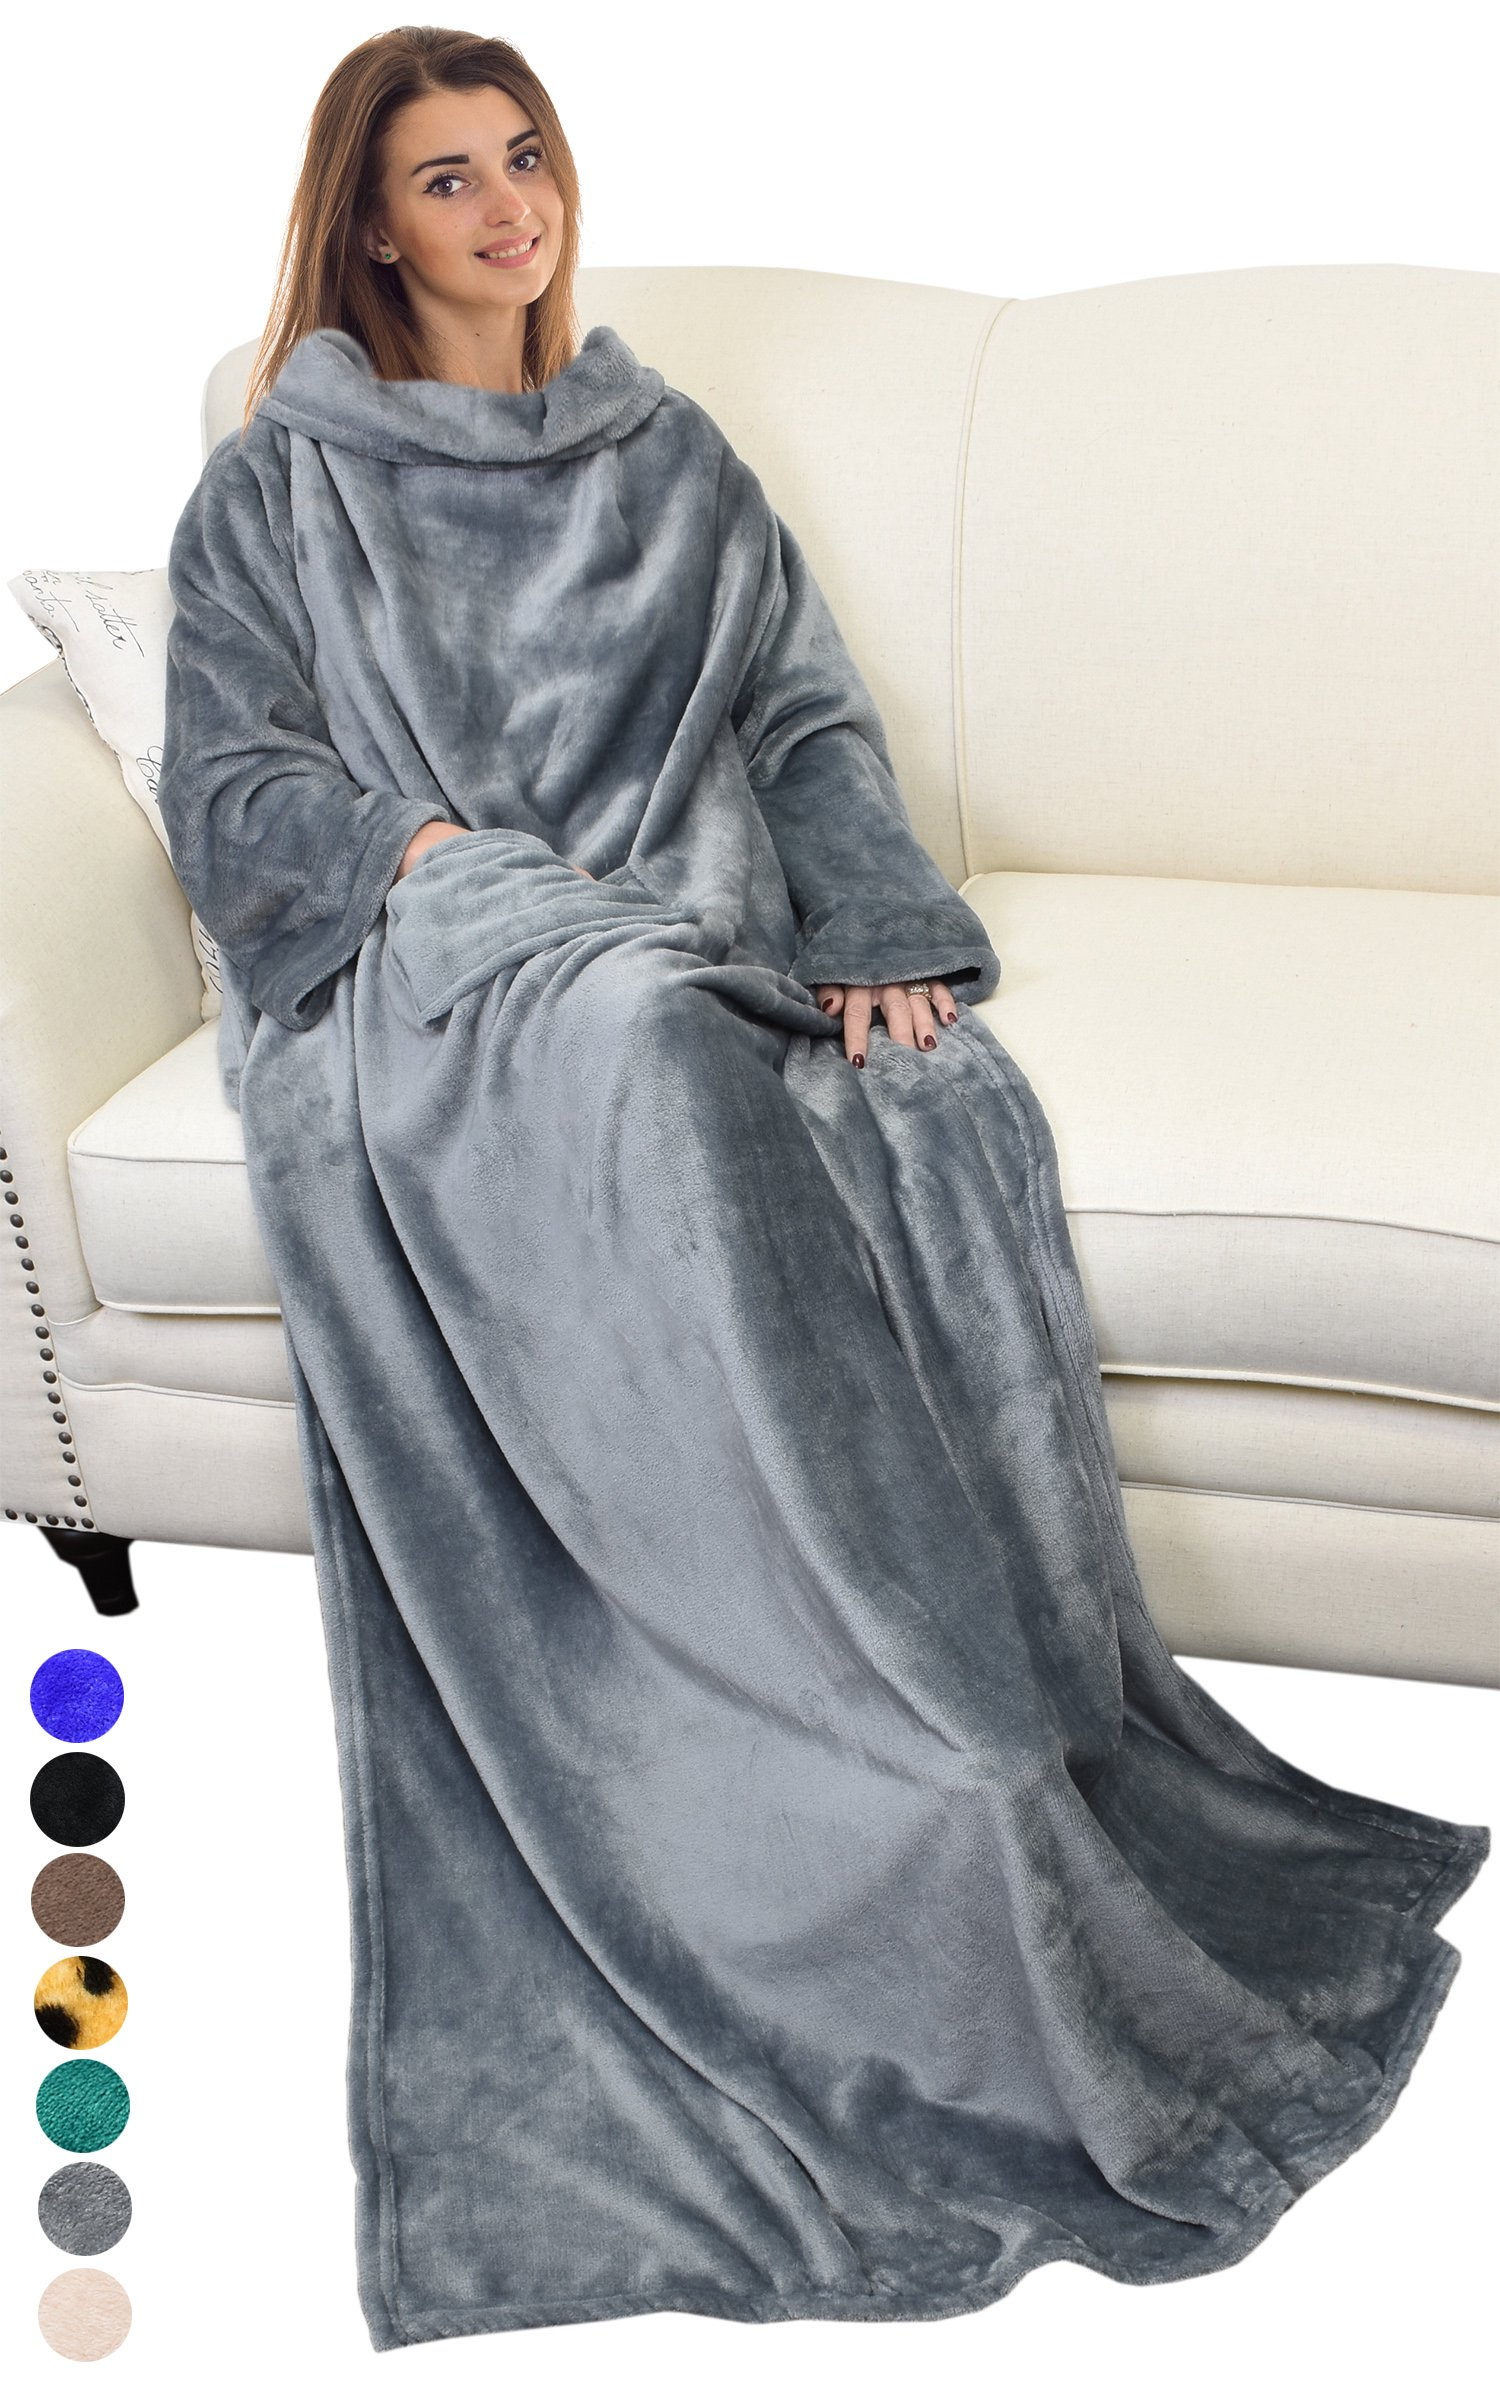 Adults Wearable Blanket with Sleeves Arms,Soft Cozy Plush Fleece Wrap Throws Blanket Robe for Women and Men Grey By Catalonia